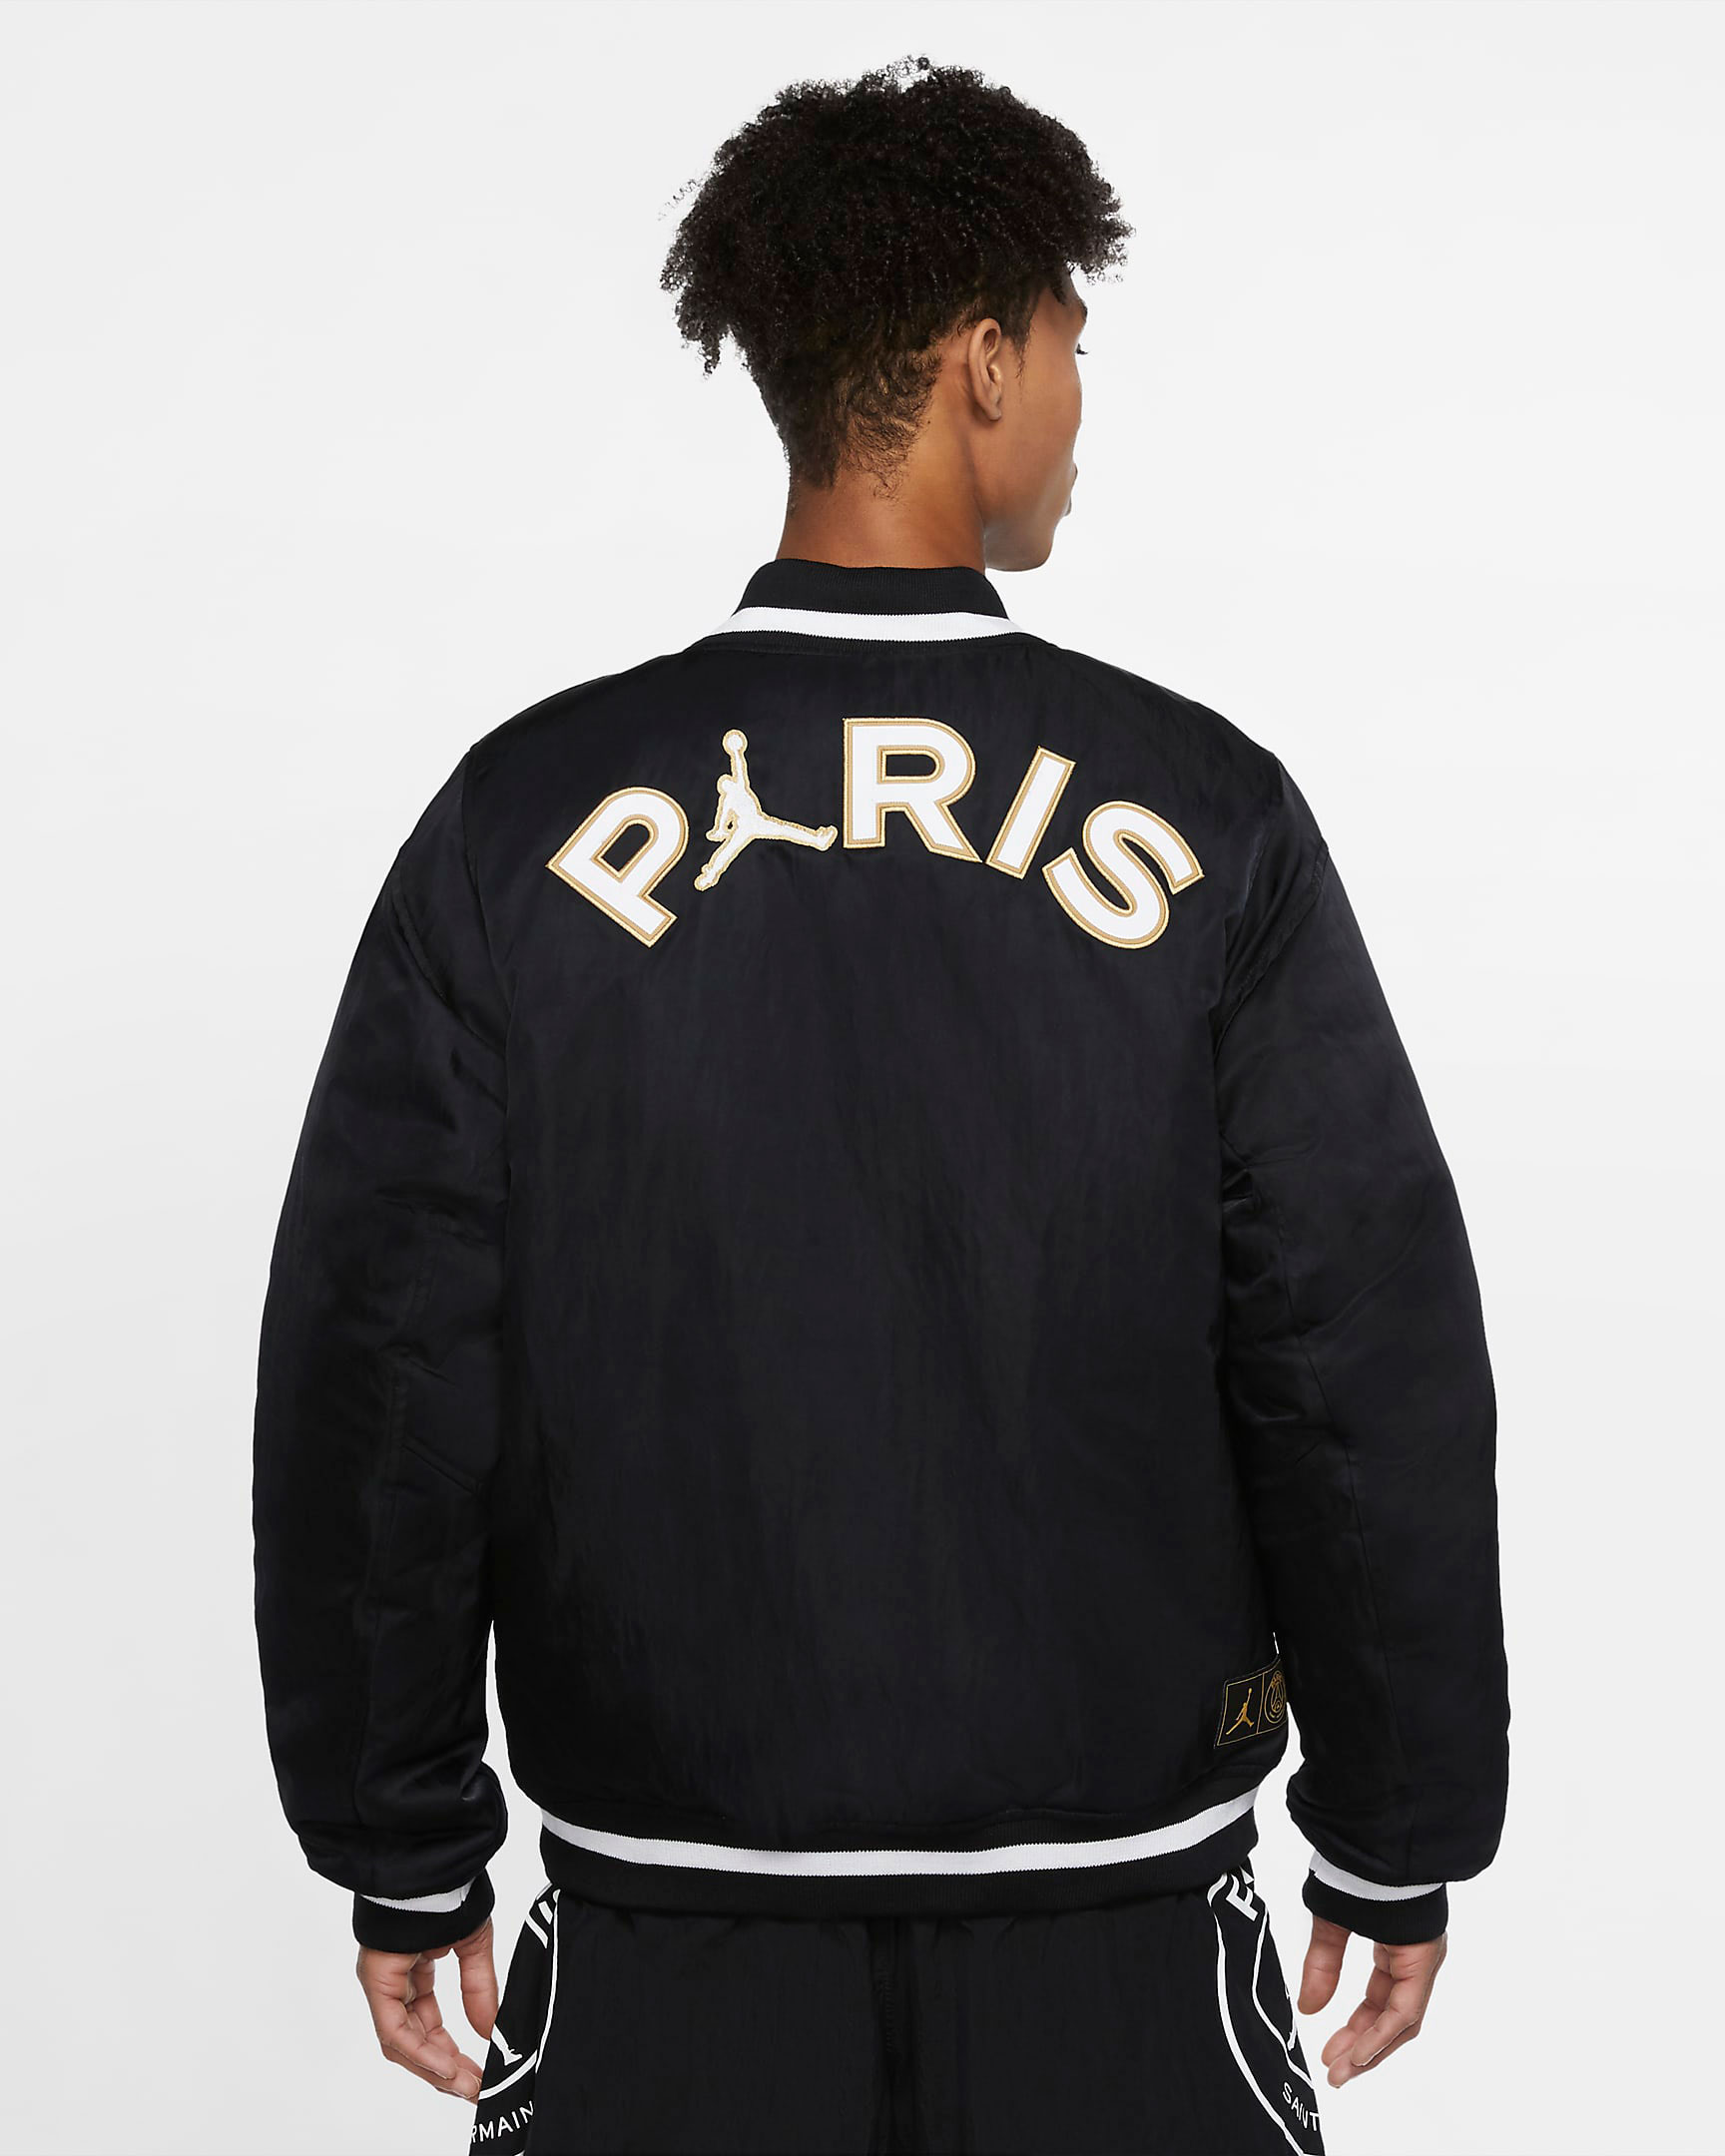 jordan-psg-paris-saint-germain-varsity-jacket-black-2